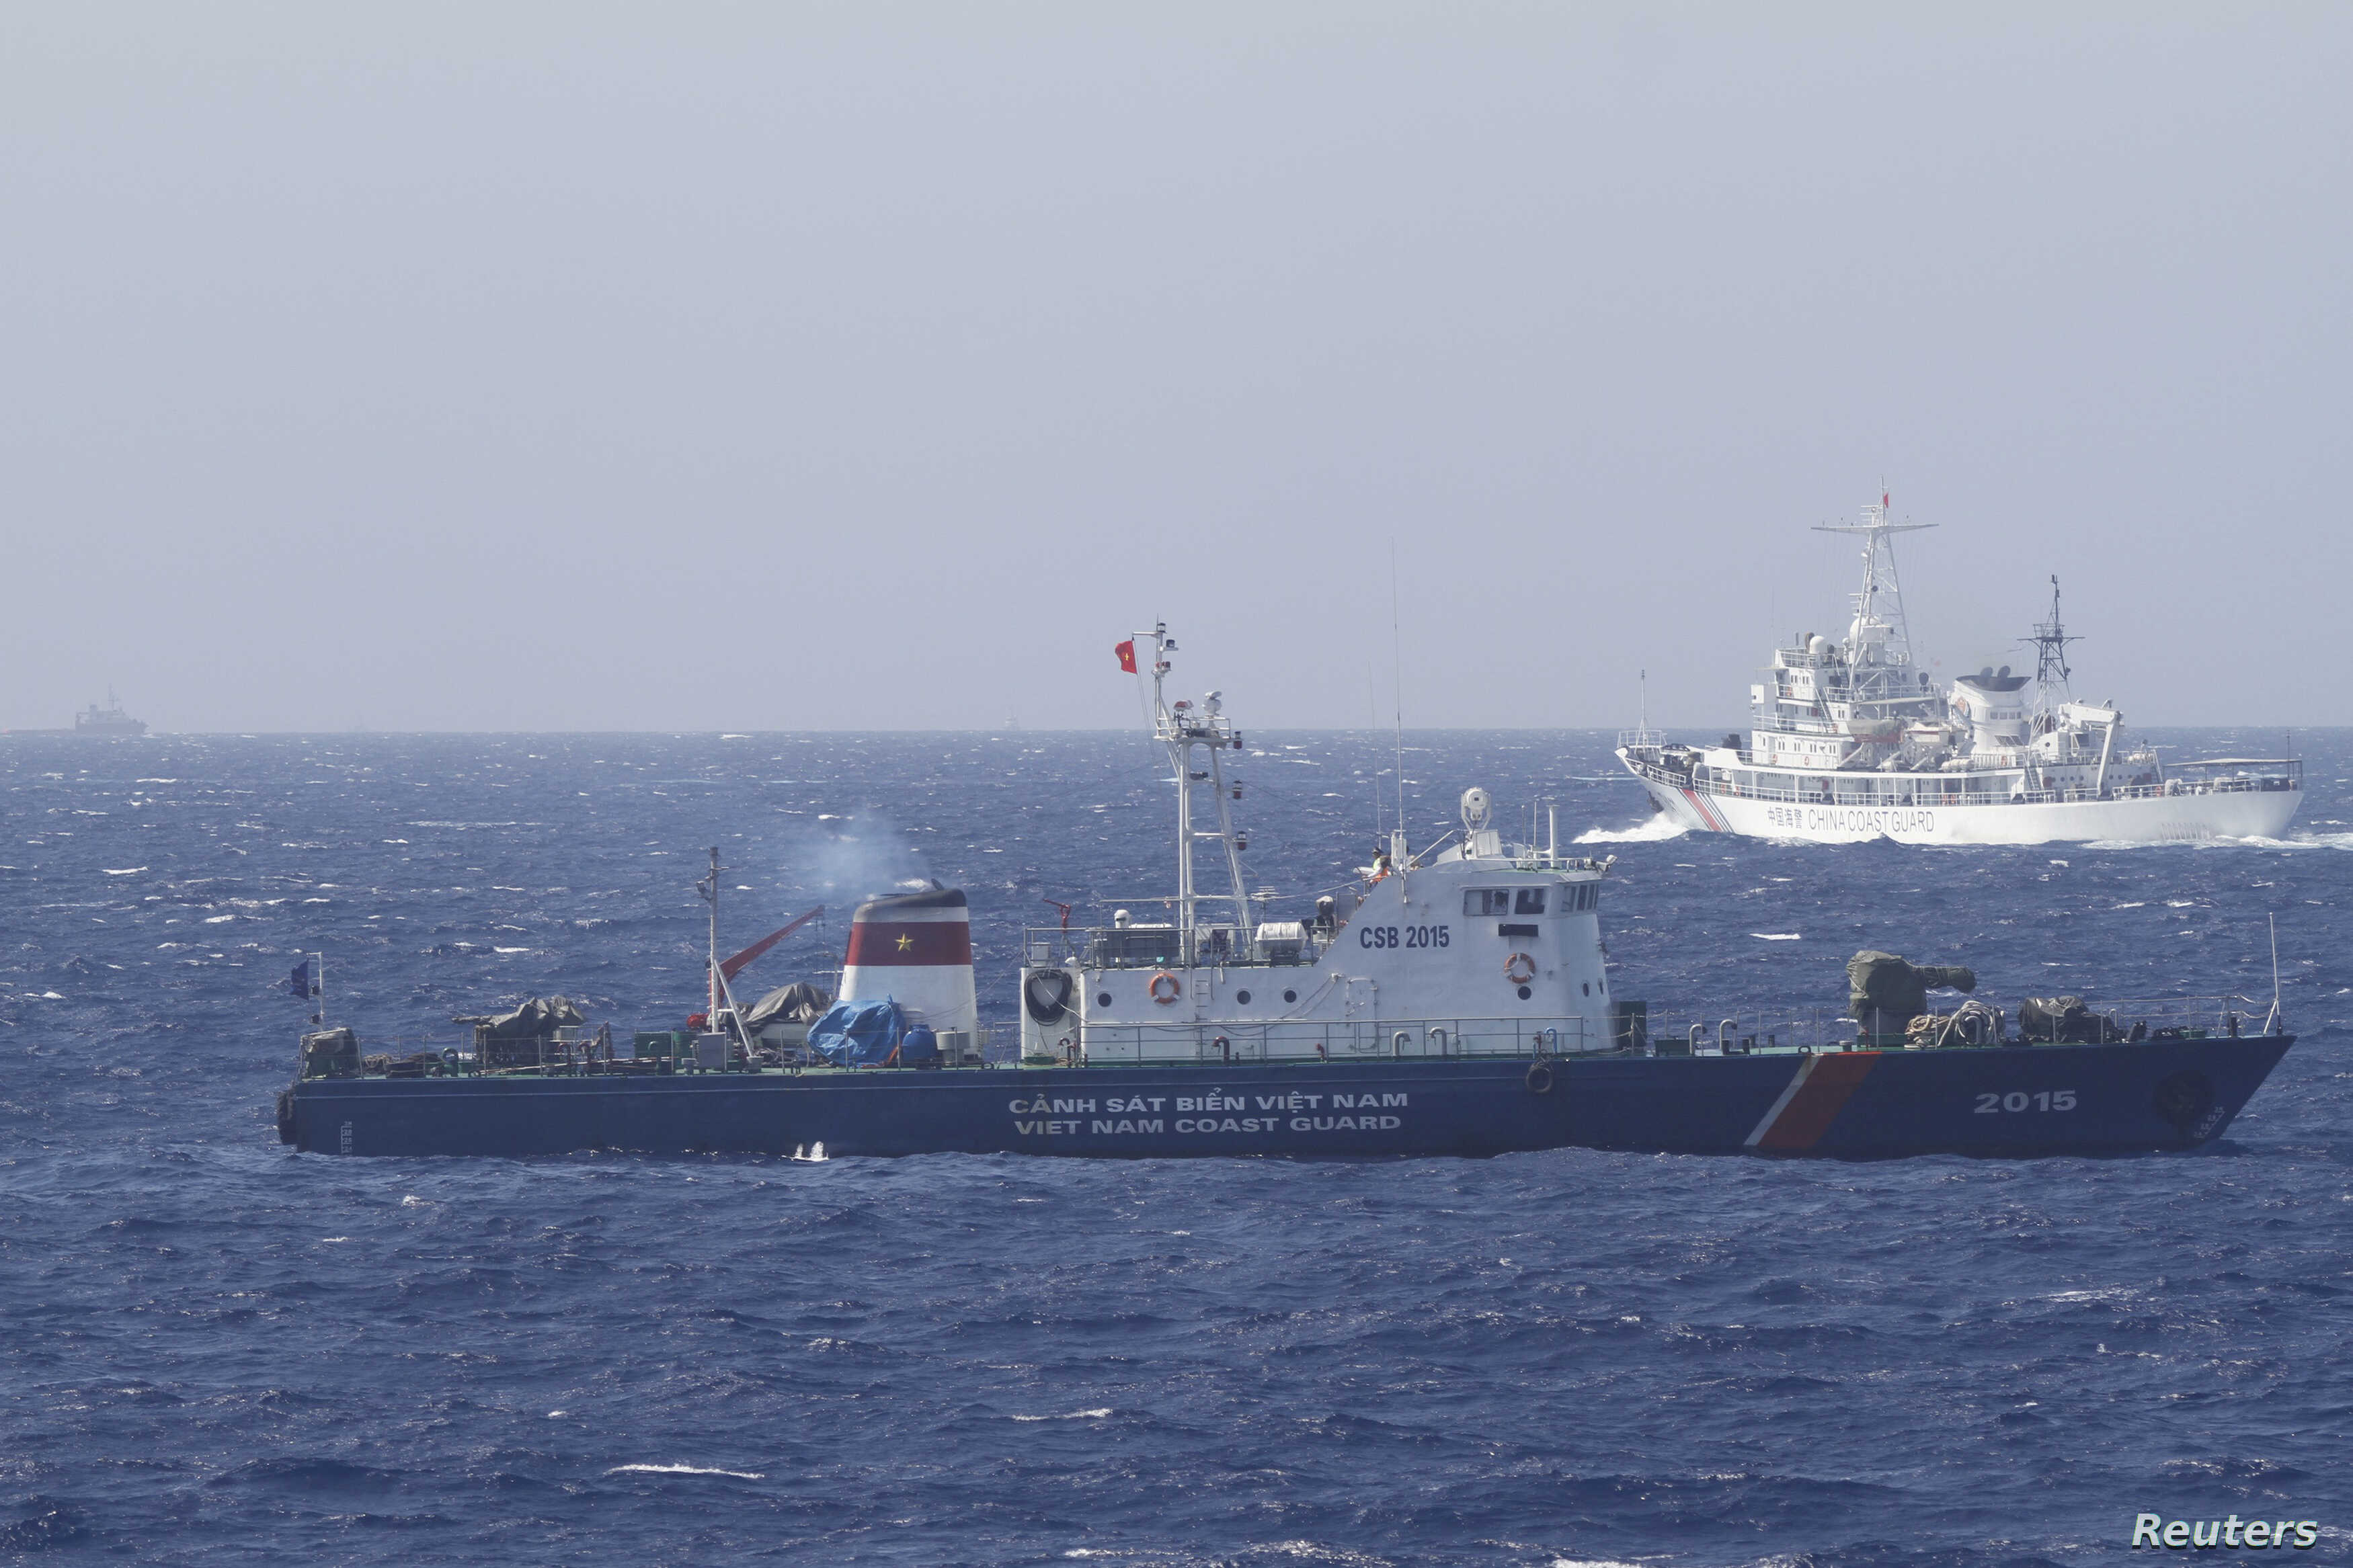 A ship (top) of Chinese Coast Guard is seen near a ship of Vietnam Marine Guard in the South China Sea, about 210 km (130 miles) off shore of Vietnam May 14, 2014. Vietnamese ships were followed by Chinese vessels as they neared China's oil rig in di...